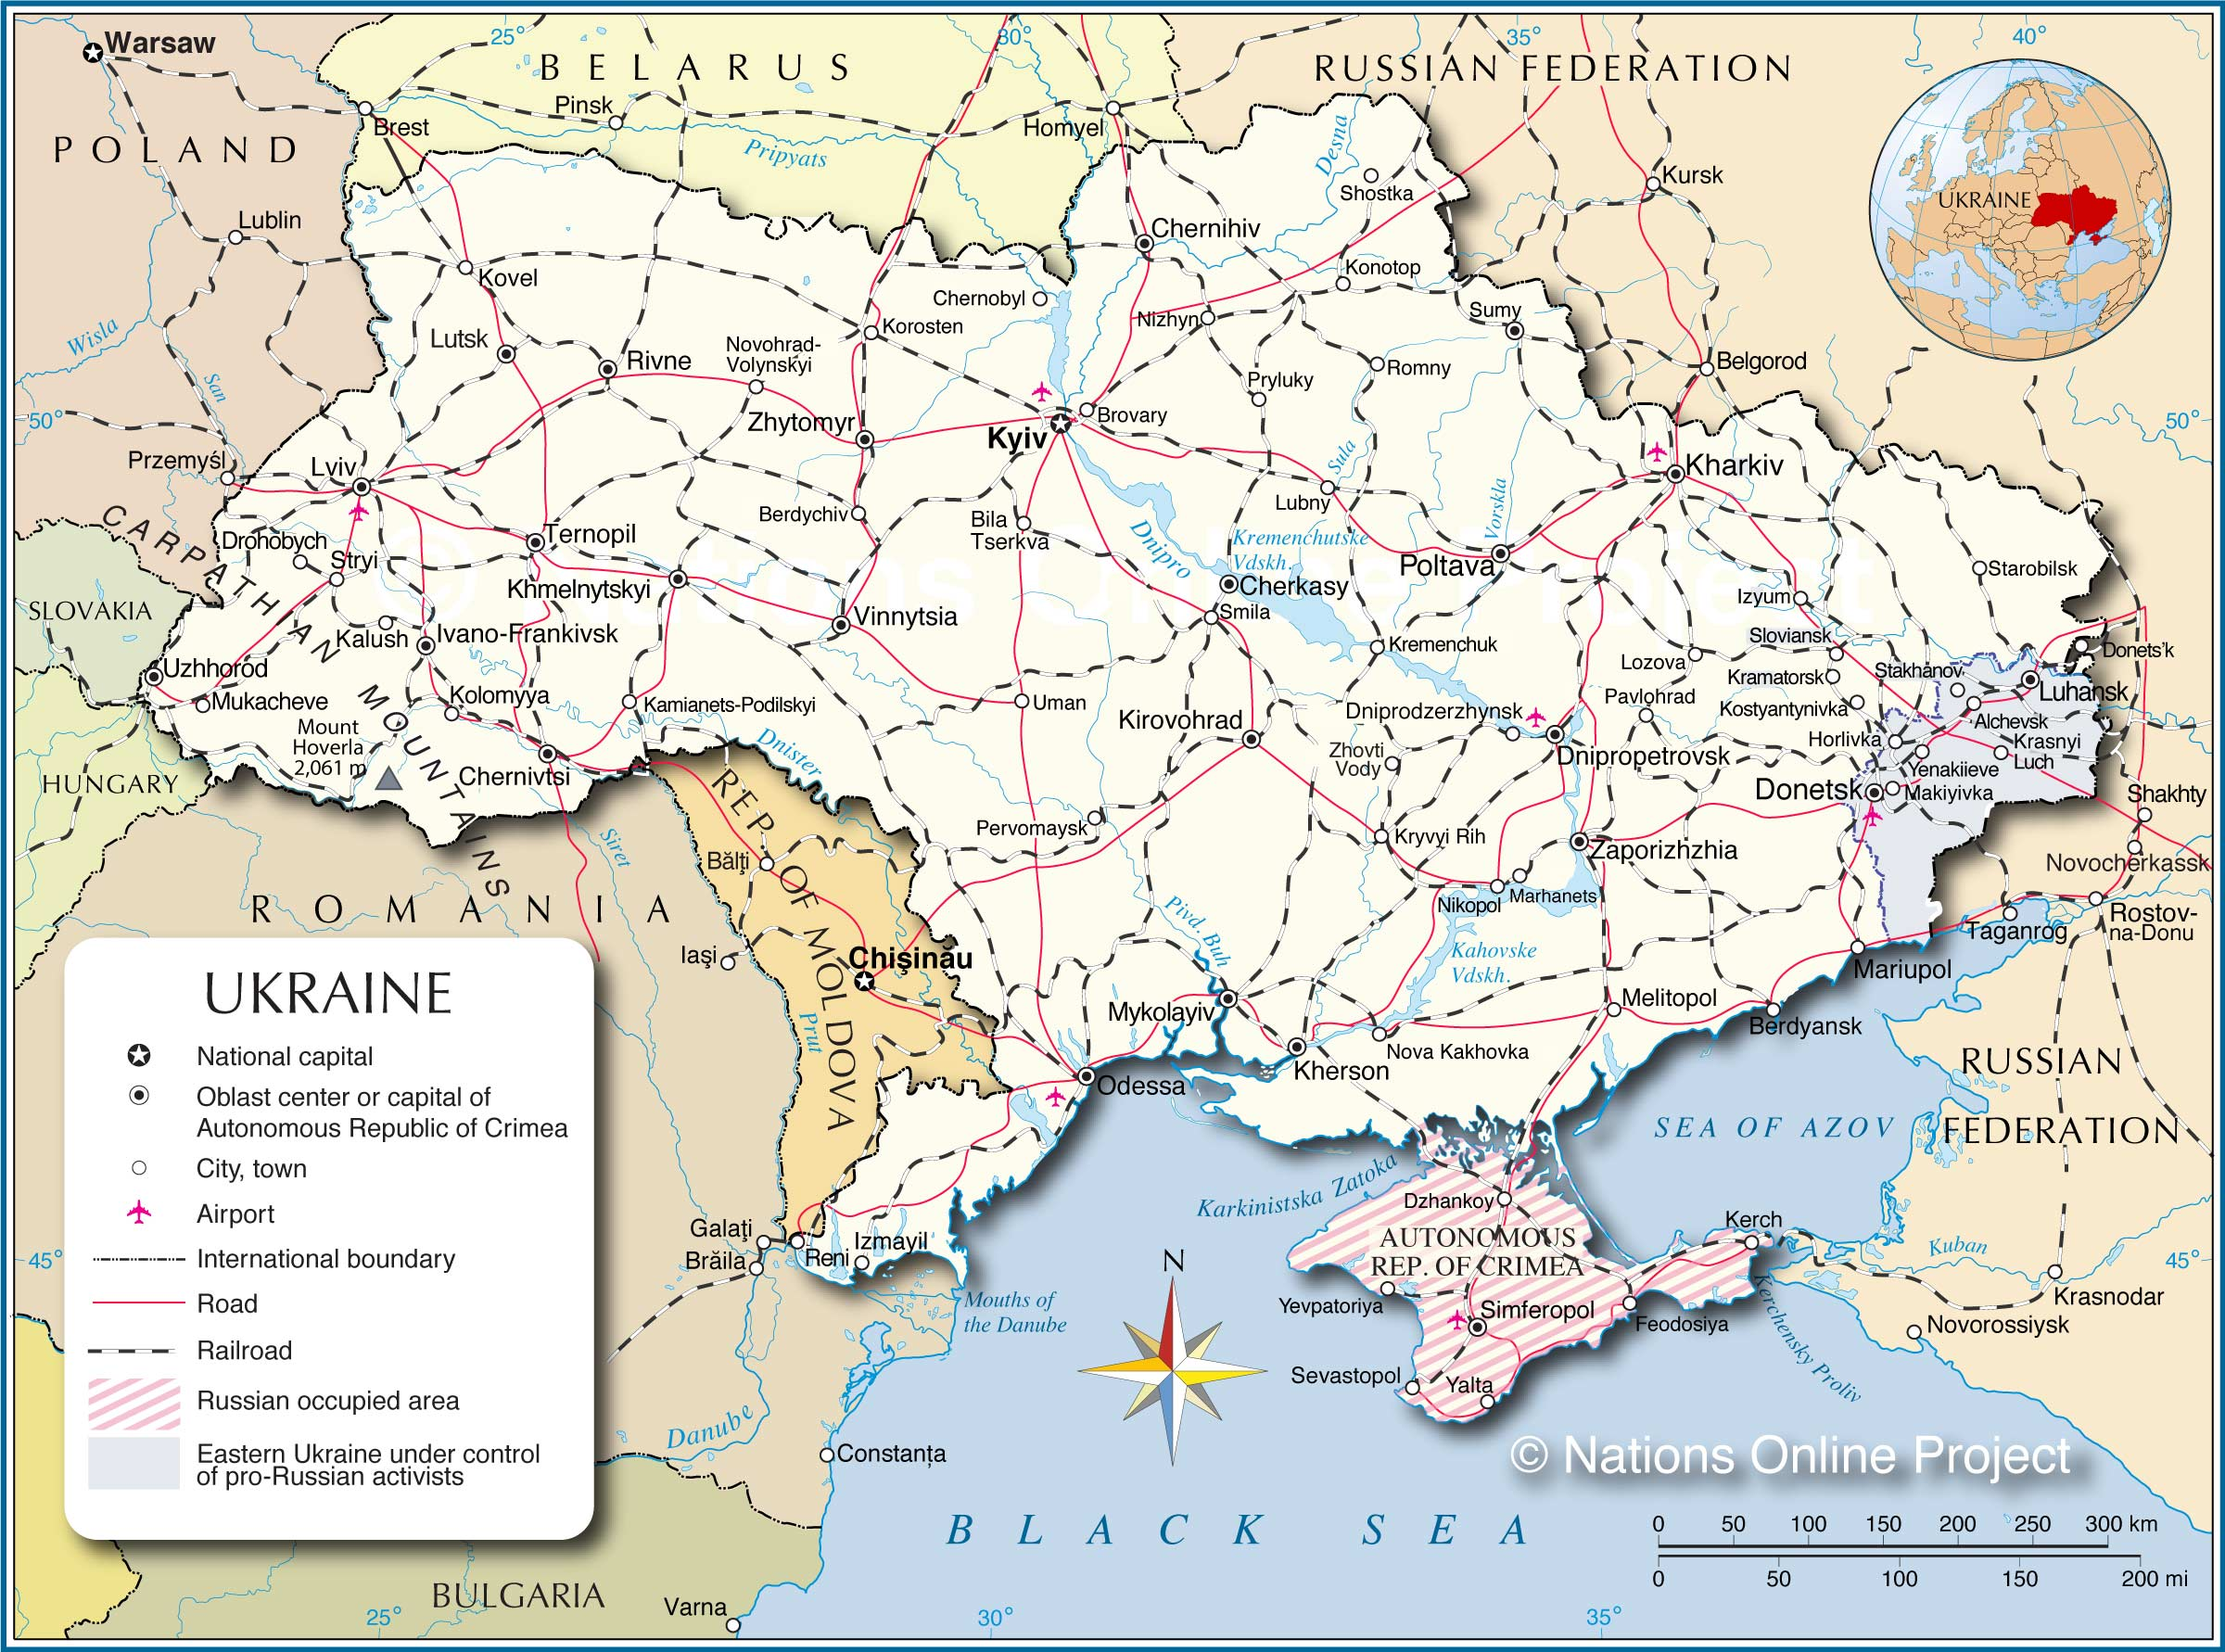 Political Map of Ukraine - Nations Online Project on jenne africa on world map, siam on world map, anatolia on world map, el alamein on world map, kilwa on world map, cascade mountain range on world map, world war 1 british blockade map, balkan powder keg map, kola peninsula on world map, dalmatia on world map, yucatan peninsula on world map, iberian peninsula on world map, batavia on world map, canton china on world map, crimea naval ports map, sevastopol crimea map, north africa on world map, elba world map, rift valley on world map,